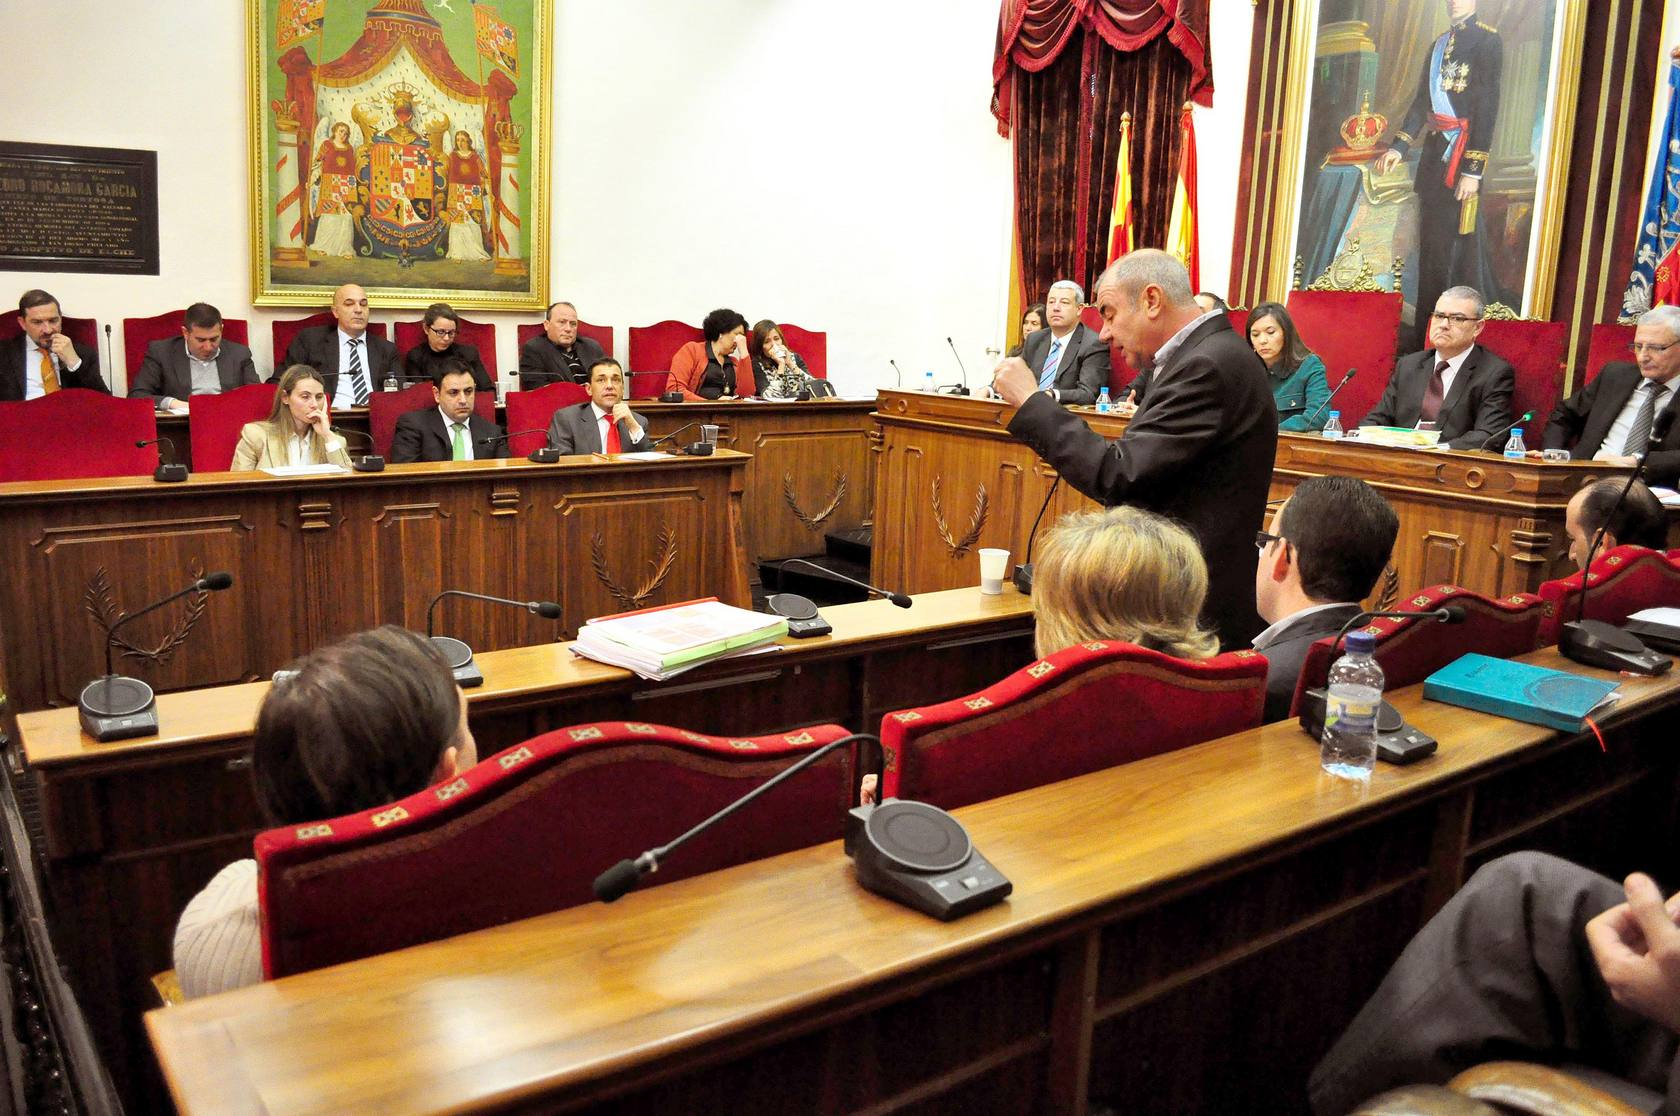 Pleno municipal extraordinario del Gobierno Local de Elche